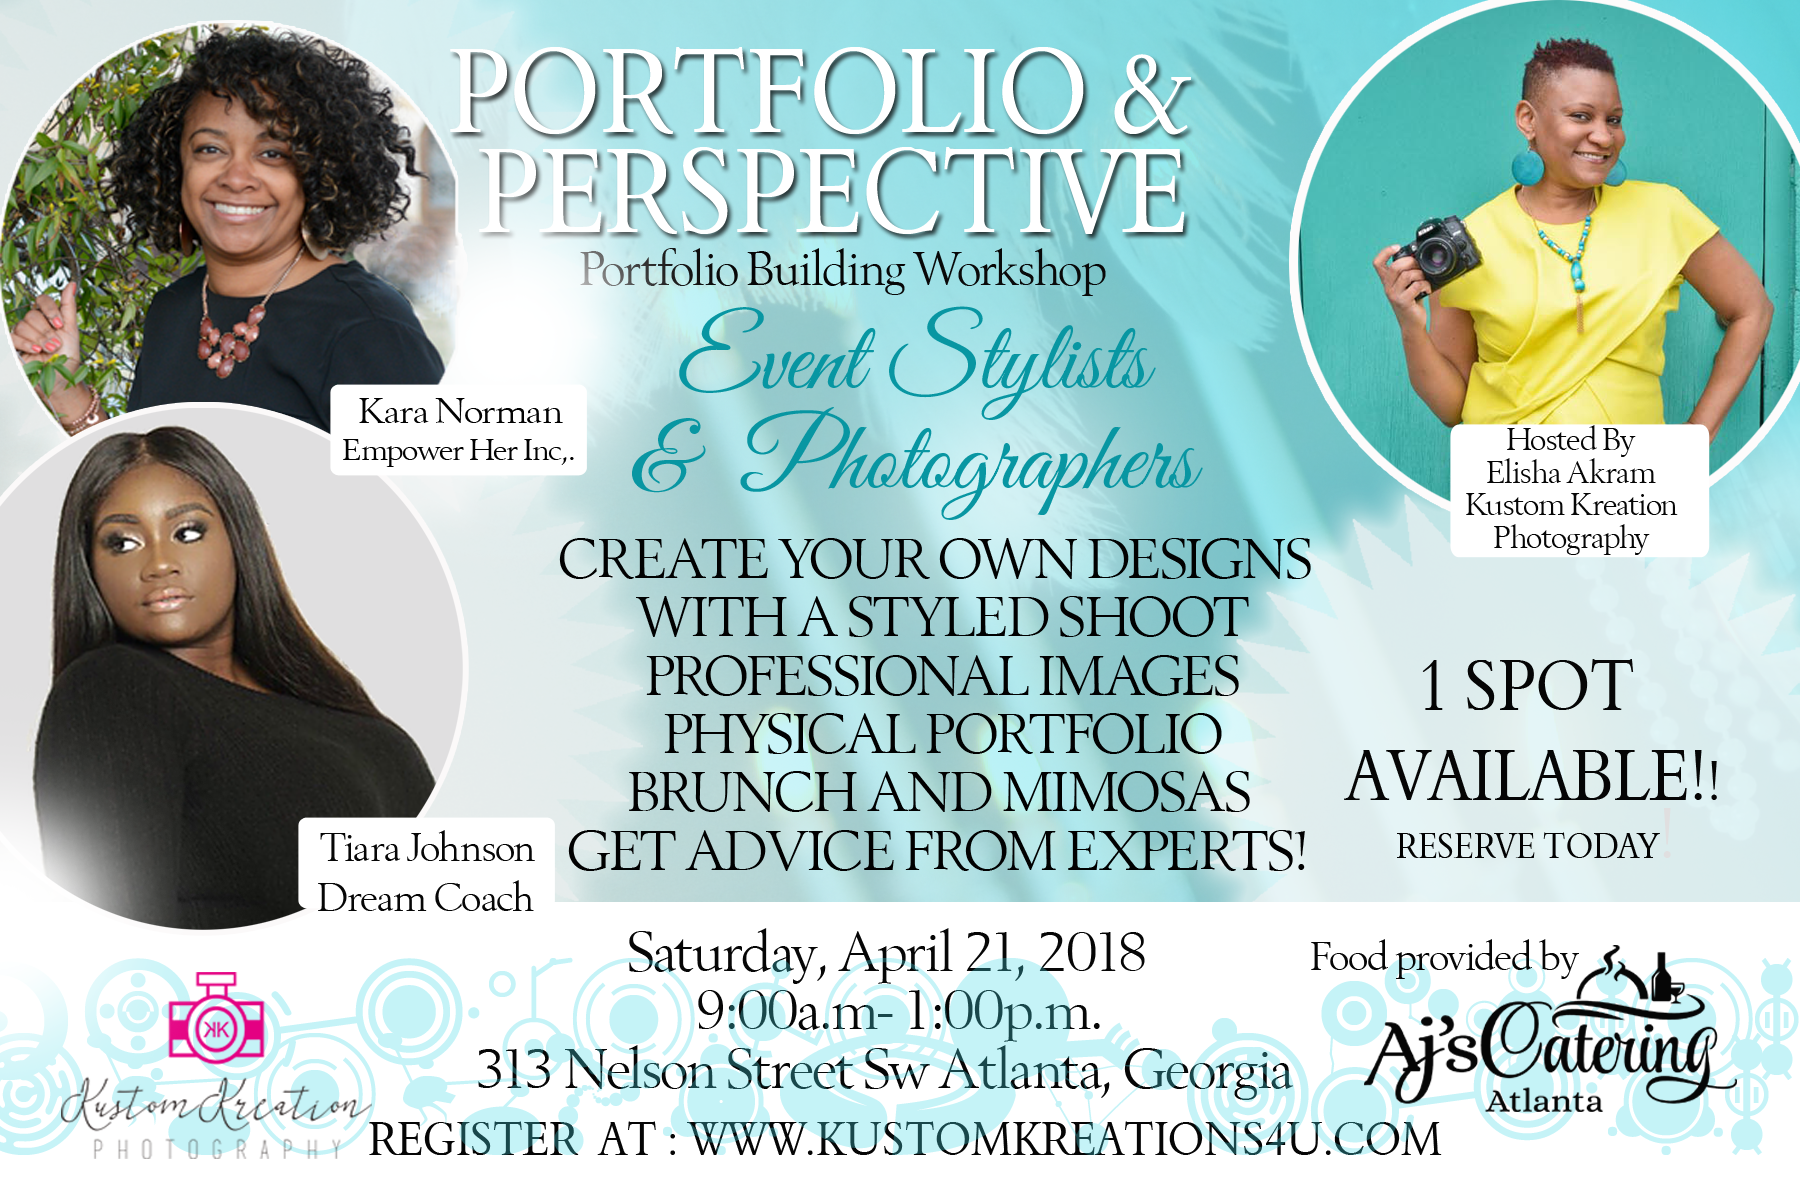 portfolio and Perspective- flyer with speakers copy 3.png